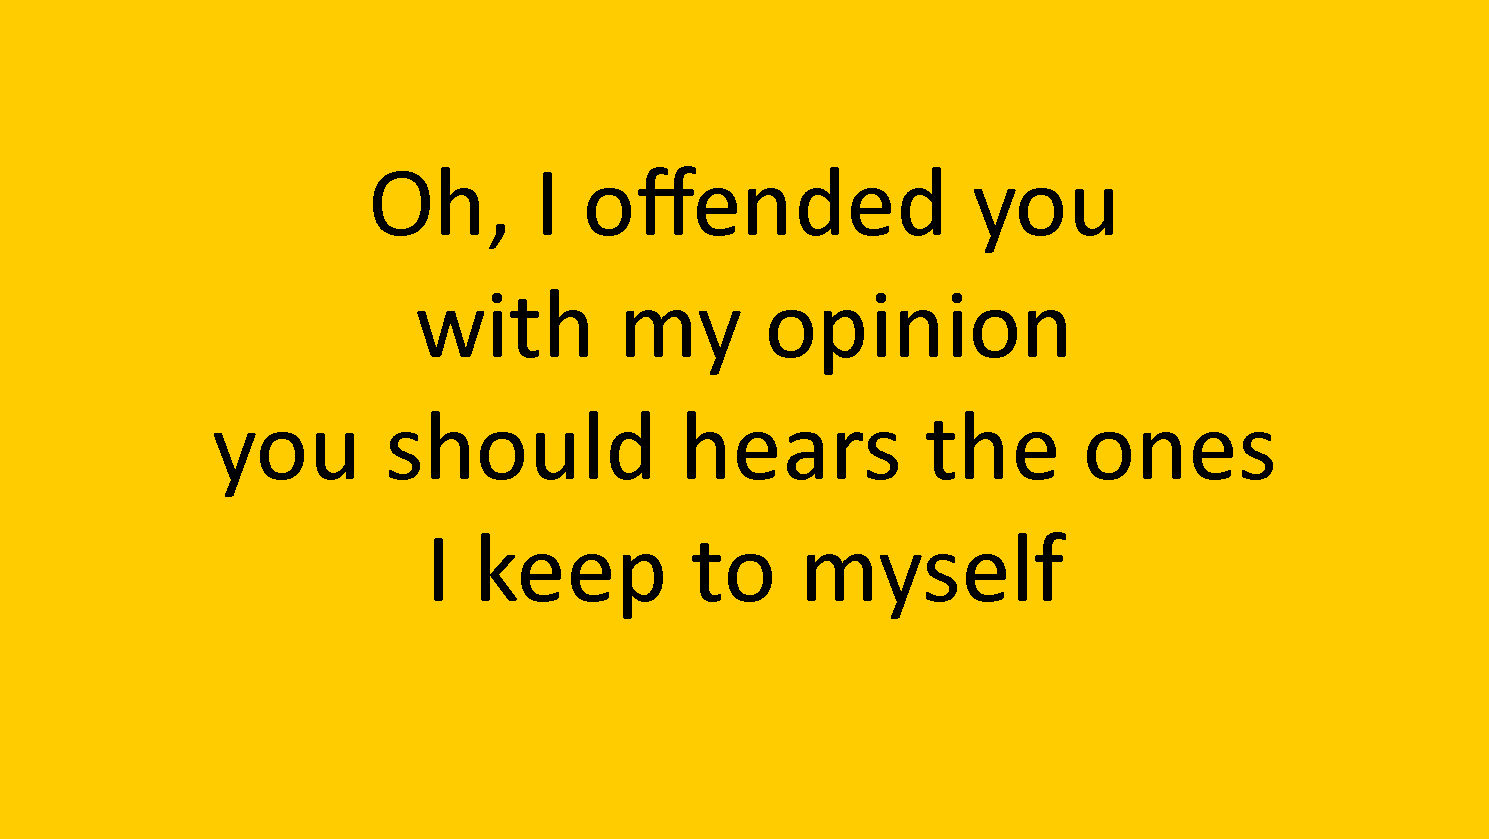 Offended You